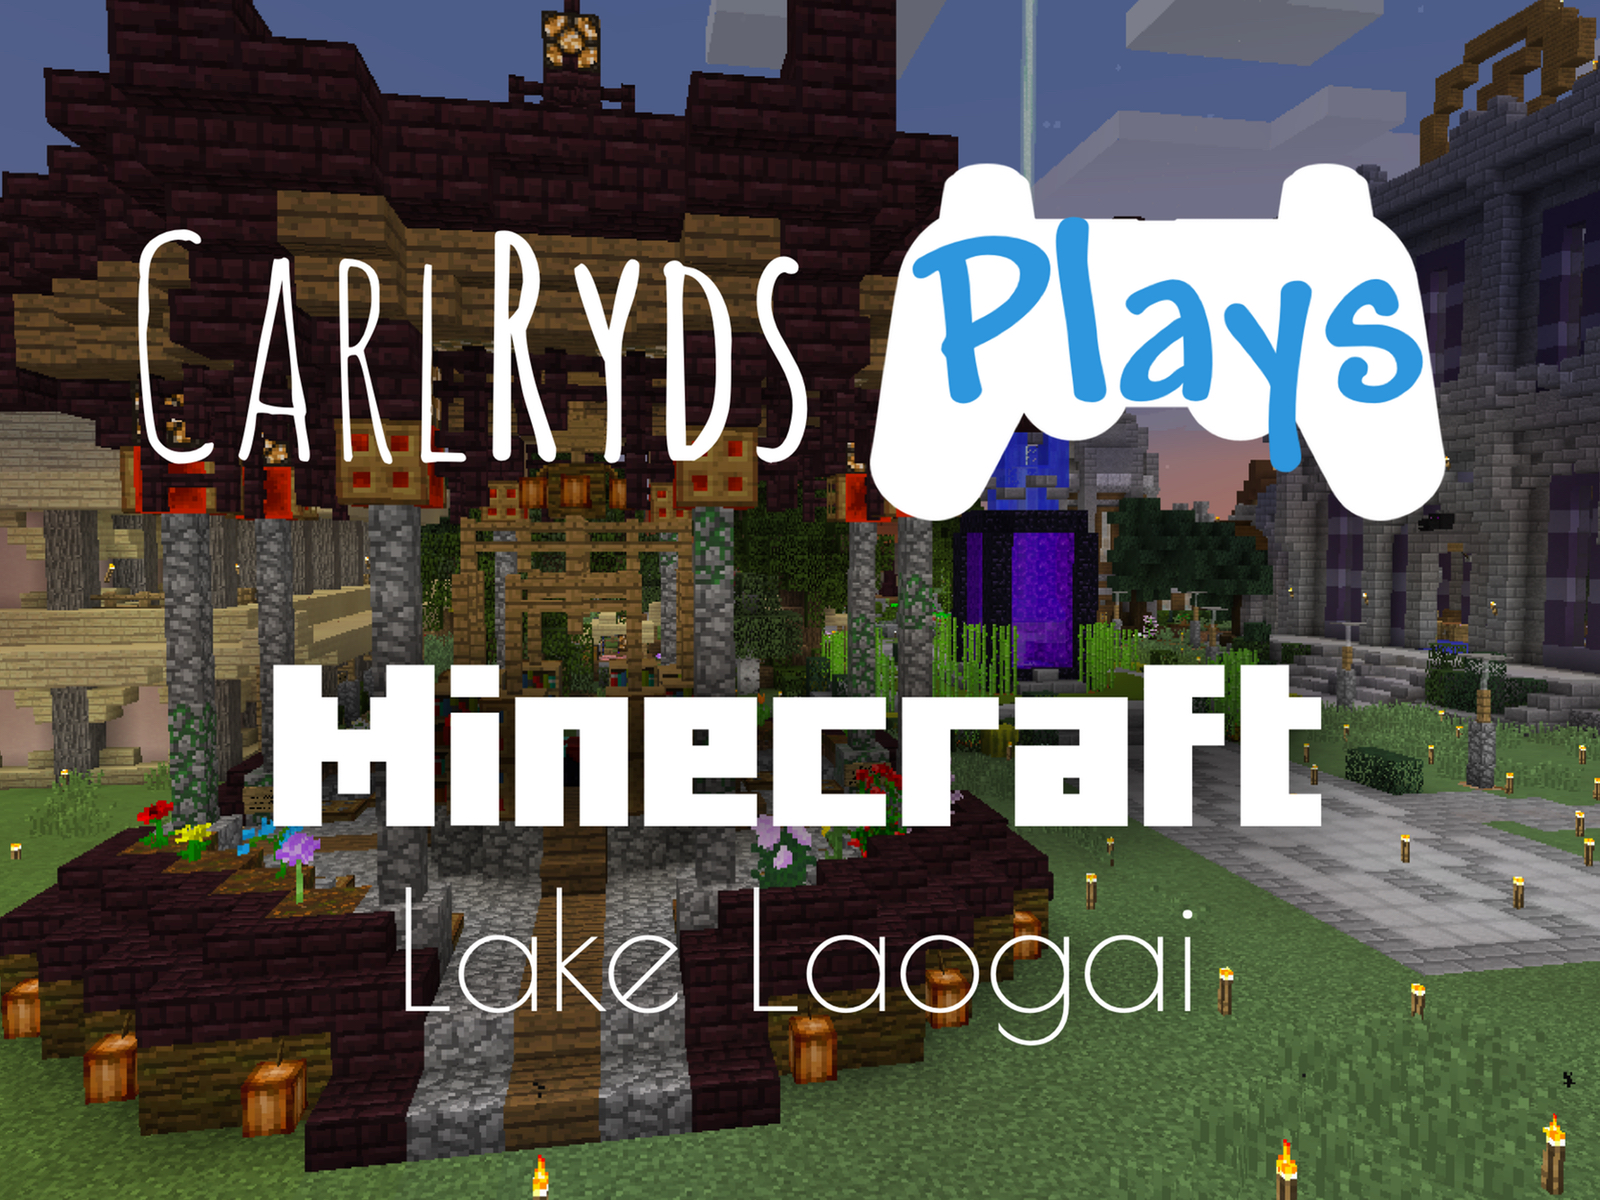 CarlRyds plays Minecraft on the Lake Laogai server